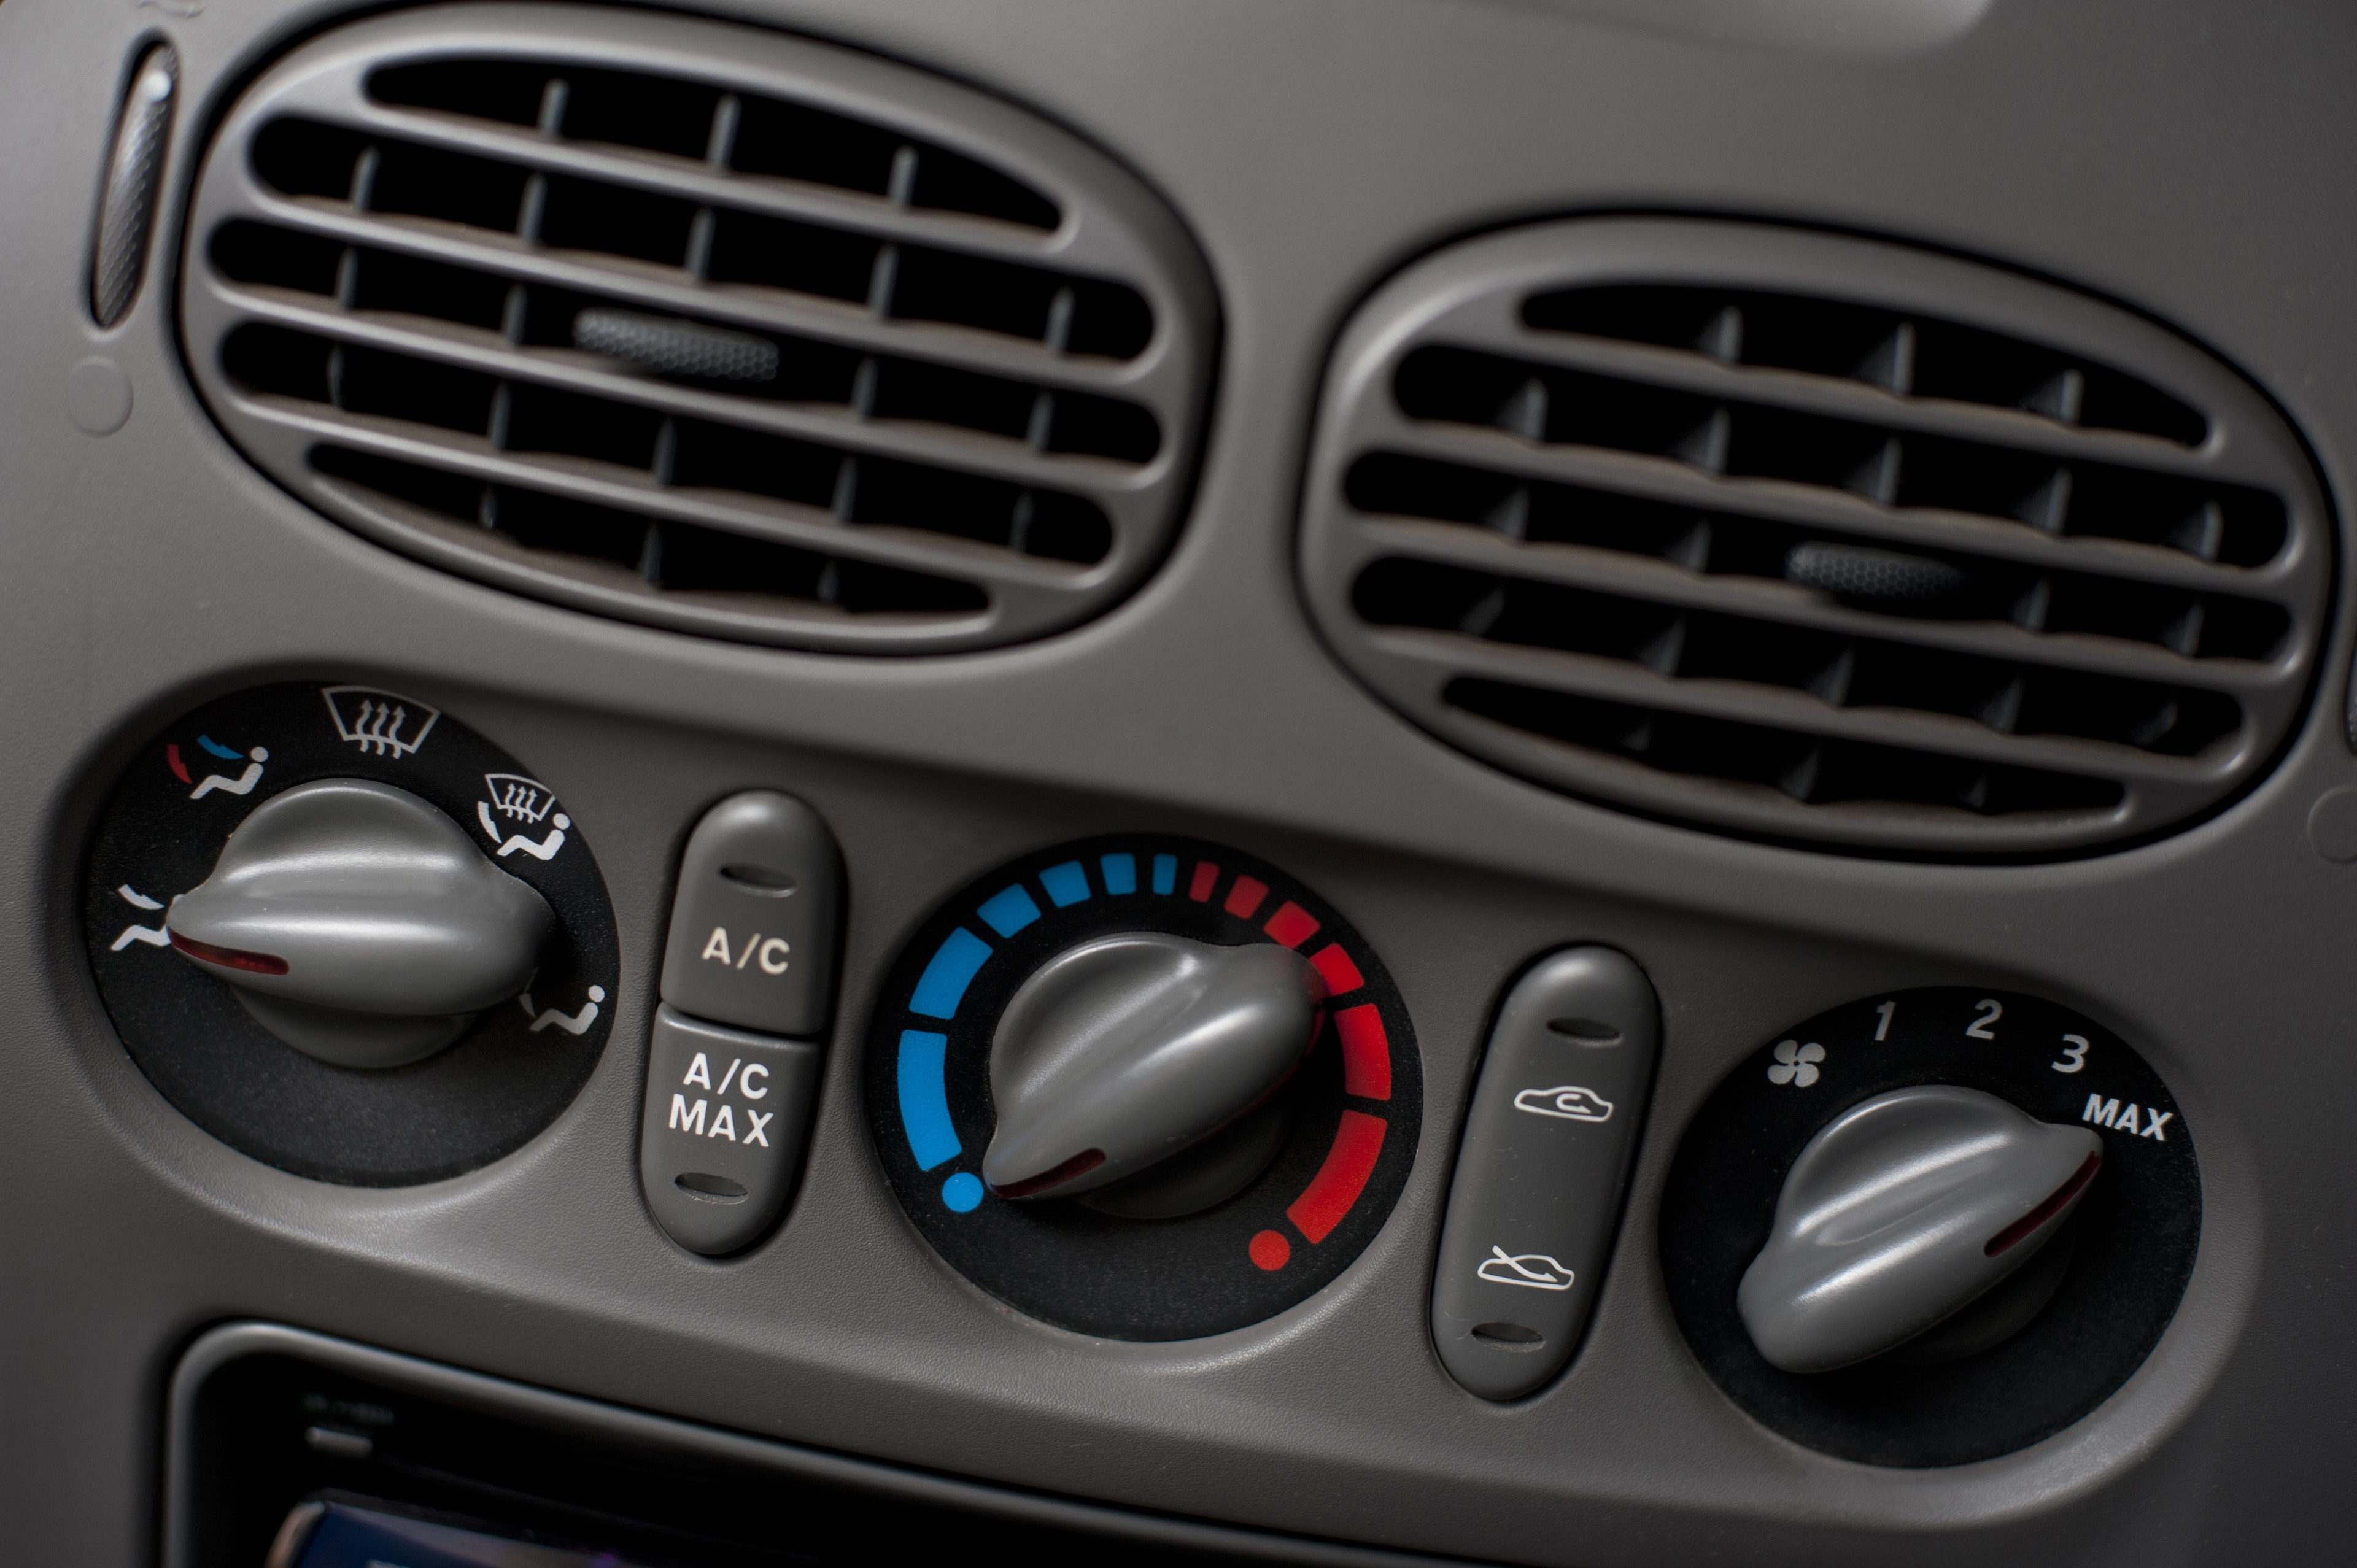 Close Up of Vehicle Dashboard Showing Detail of Climate Controls and Vents